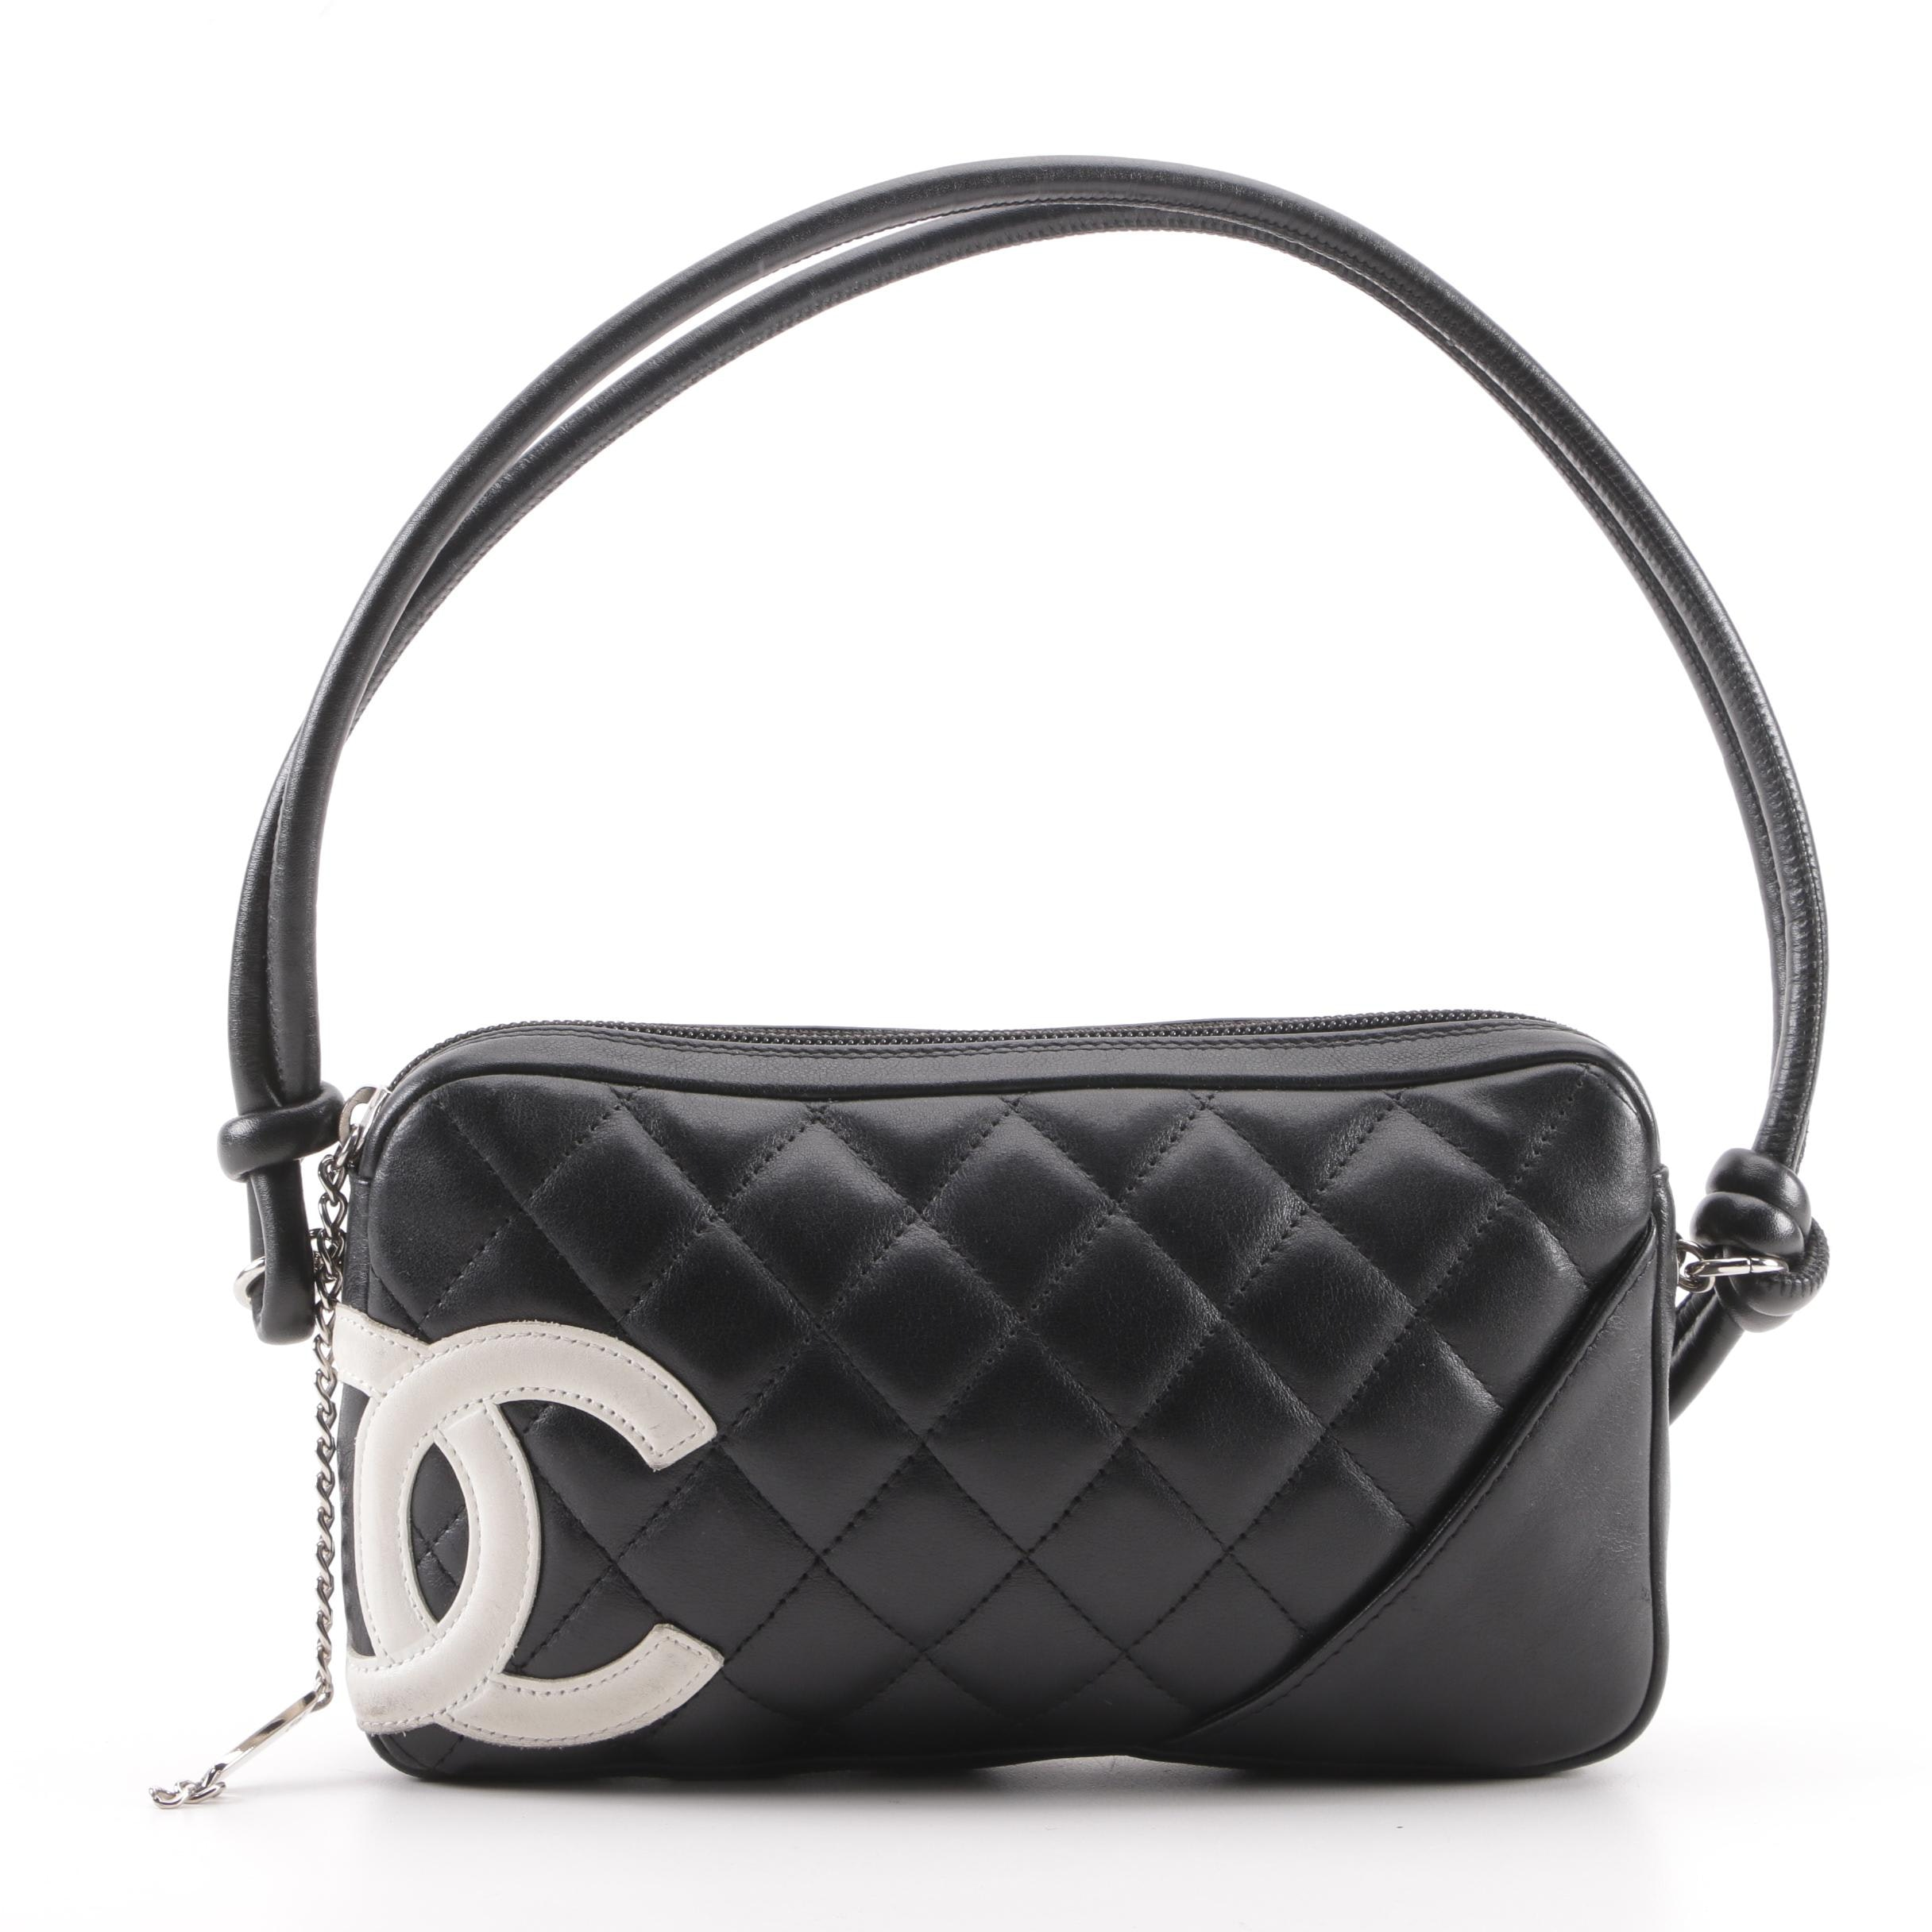 Chanel Cambon Ligne Quilted Pochette Black and White Leather Shoulder Bag